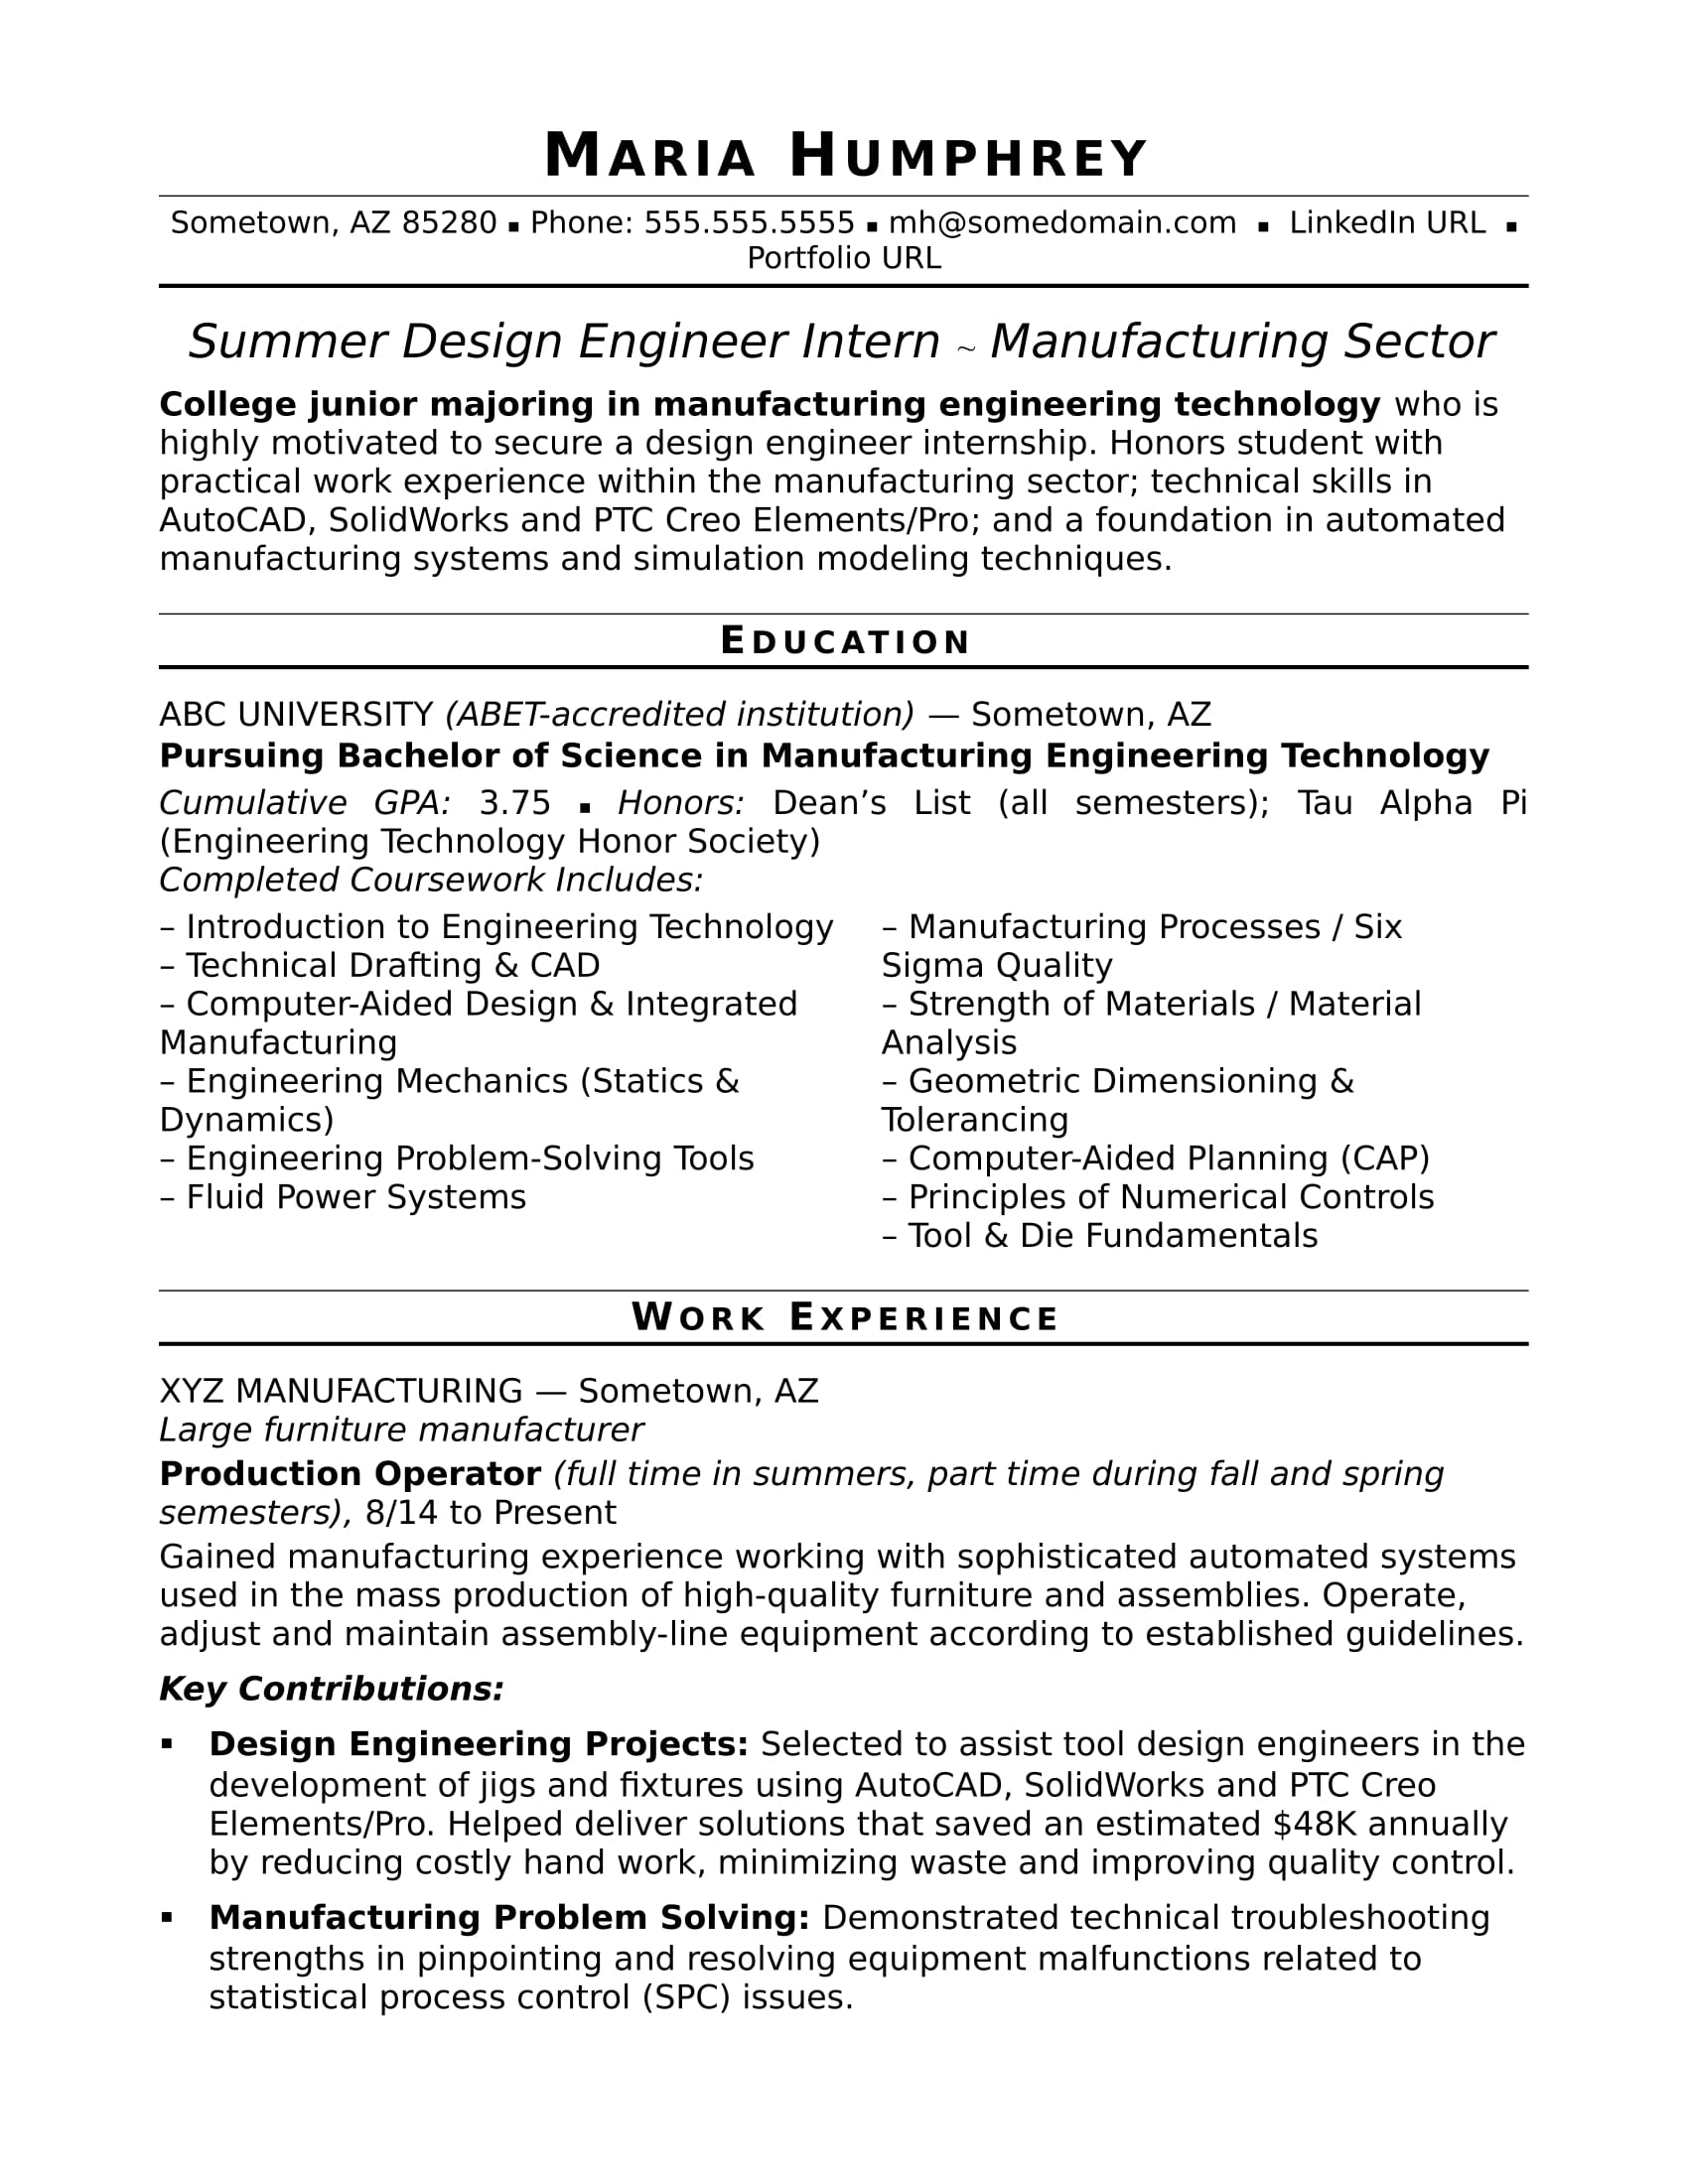 sample resume for an entry level design engineer - Linkedin Url On Resume